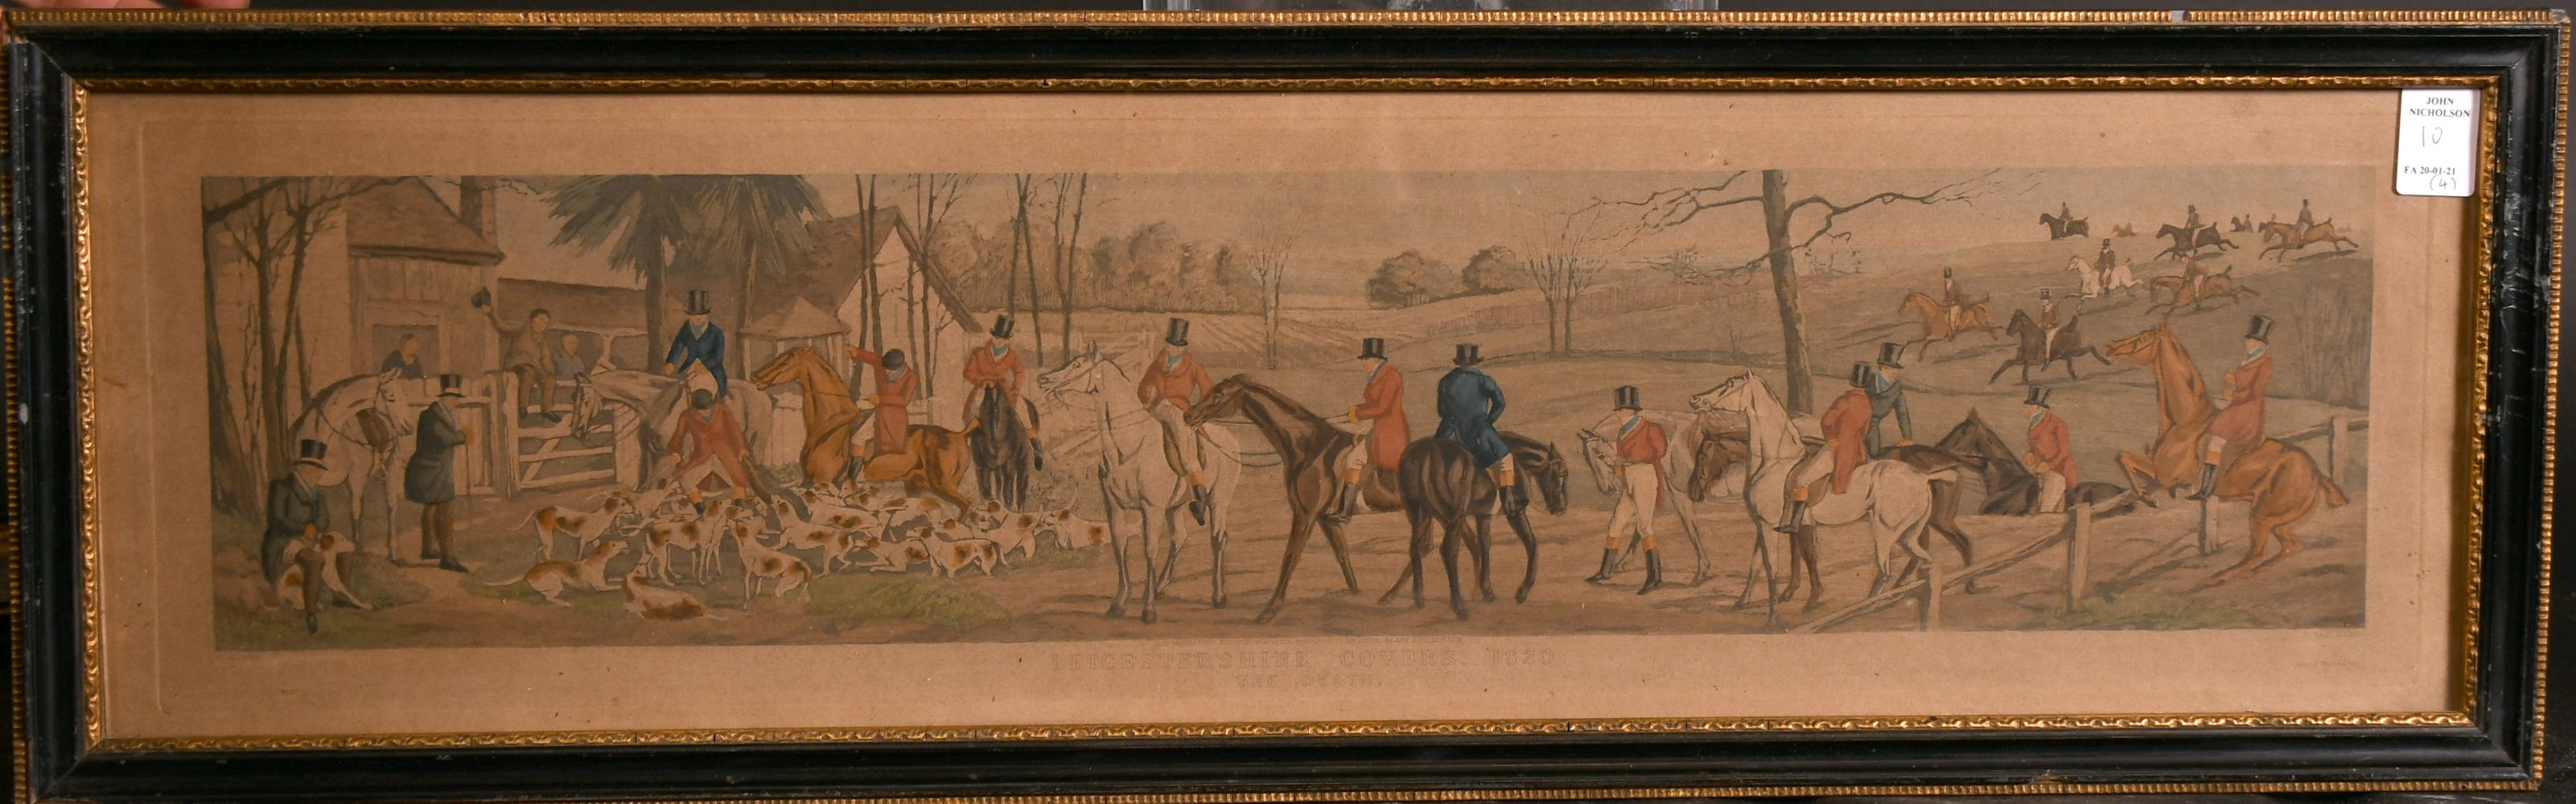 """After H. Alken, 'Leicestershire covers 1820' a set of four hunting prints, each 5"""" x 23.5"""". - Image 3 of 5"""